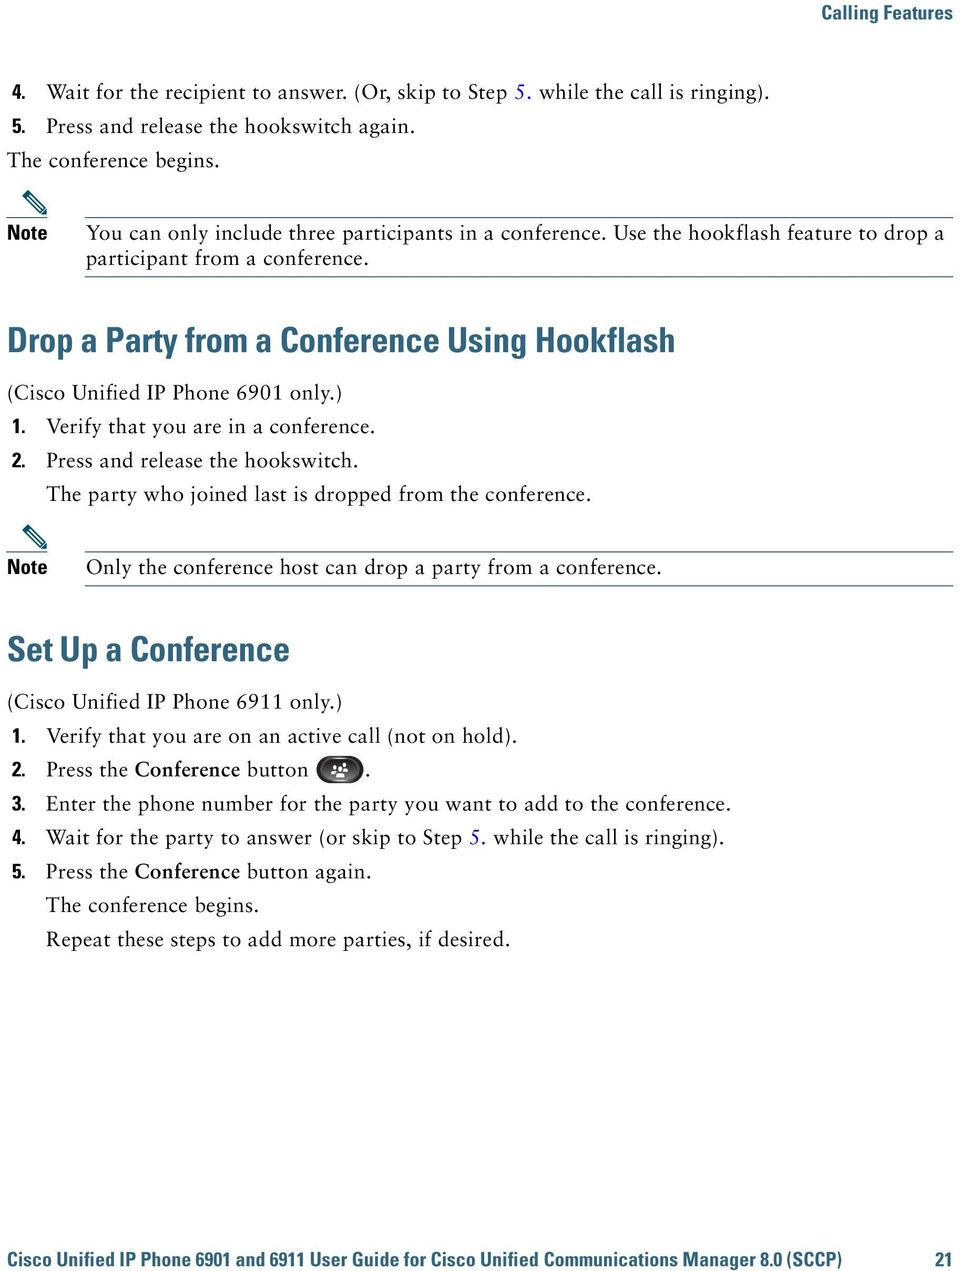 Drop a Party from a Conference Using Hookflash (Cisco Unified IP Phone 6901 only.) 1. Verify that you are in a conference. 2. Press and release the hookswitch.